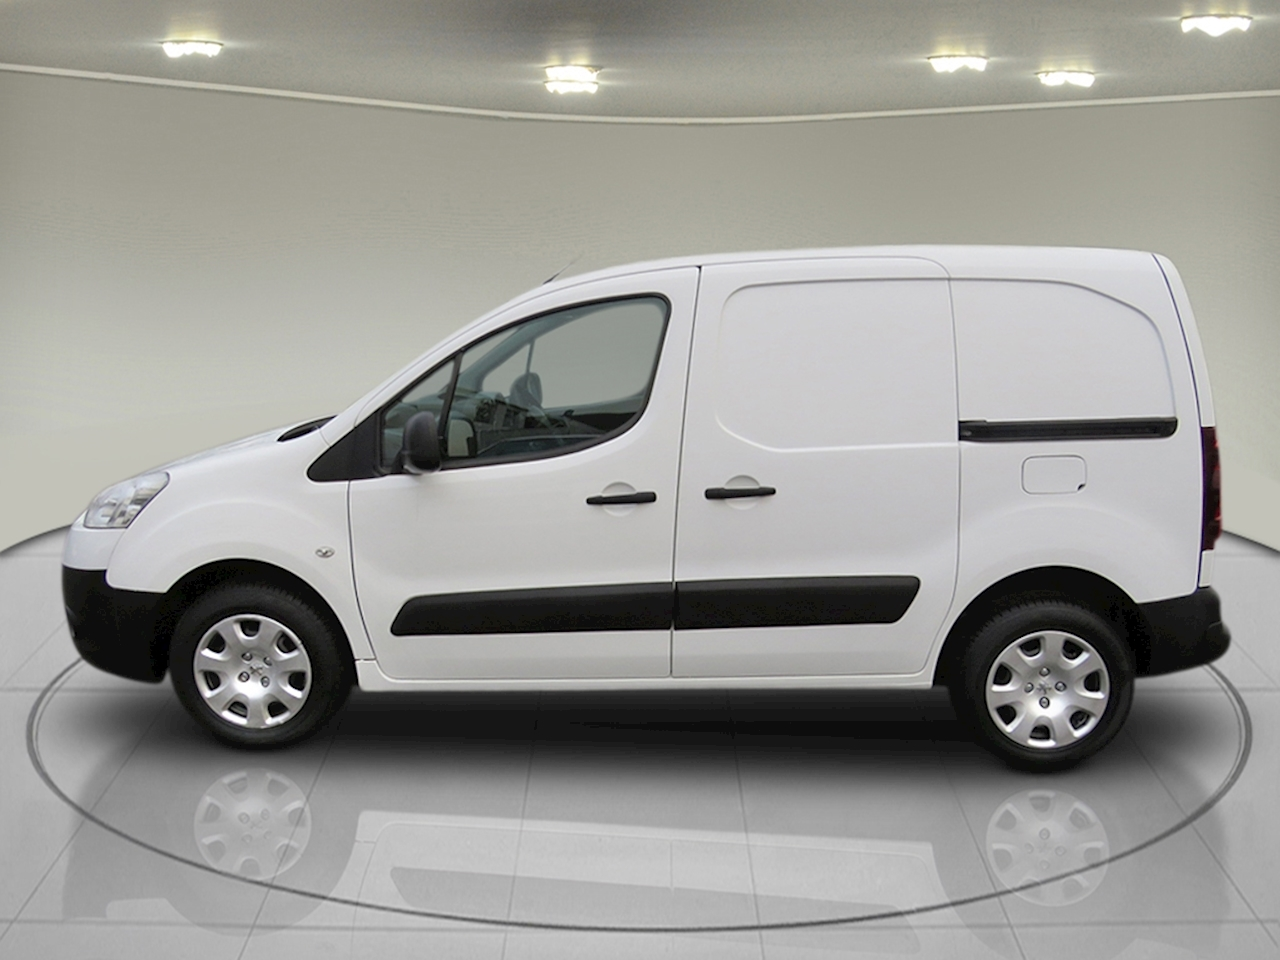 Peugeot Partner Hdi S L1 850 1.6 4dr Panel Van Manual Diesel